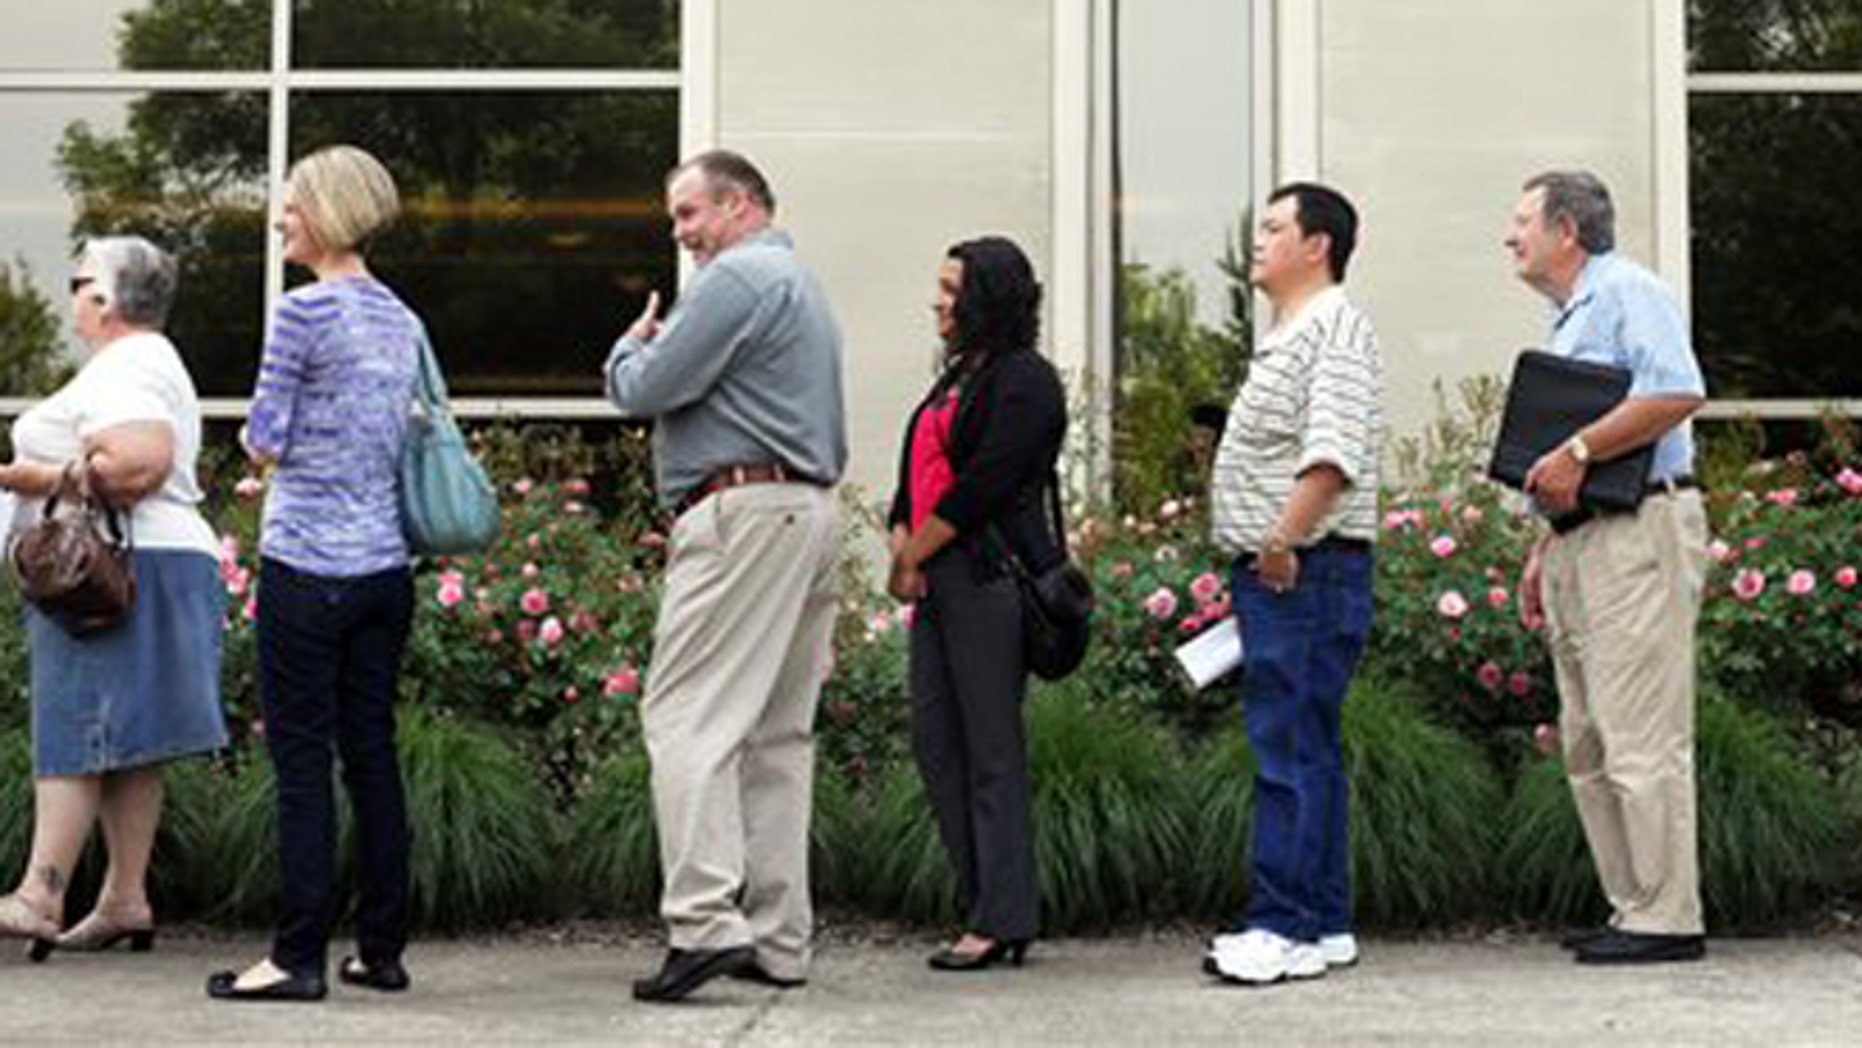 May 30, 2012: Dozens of people line up to seek a job at the Wells Fargo call center in Salem, Ore.